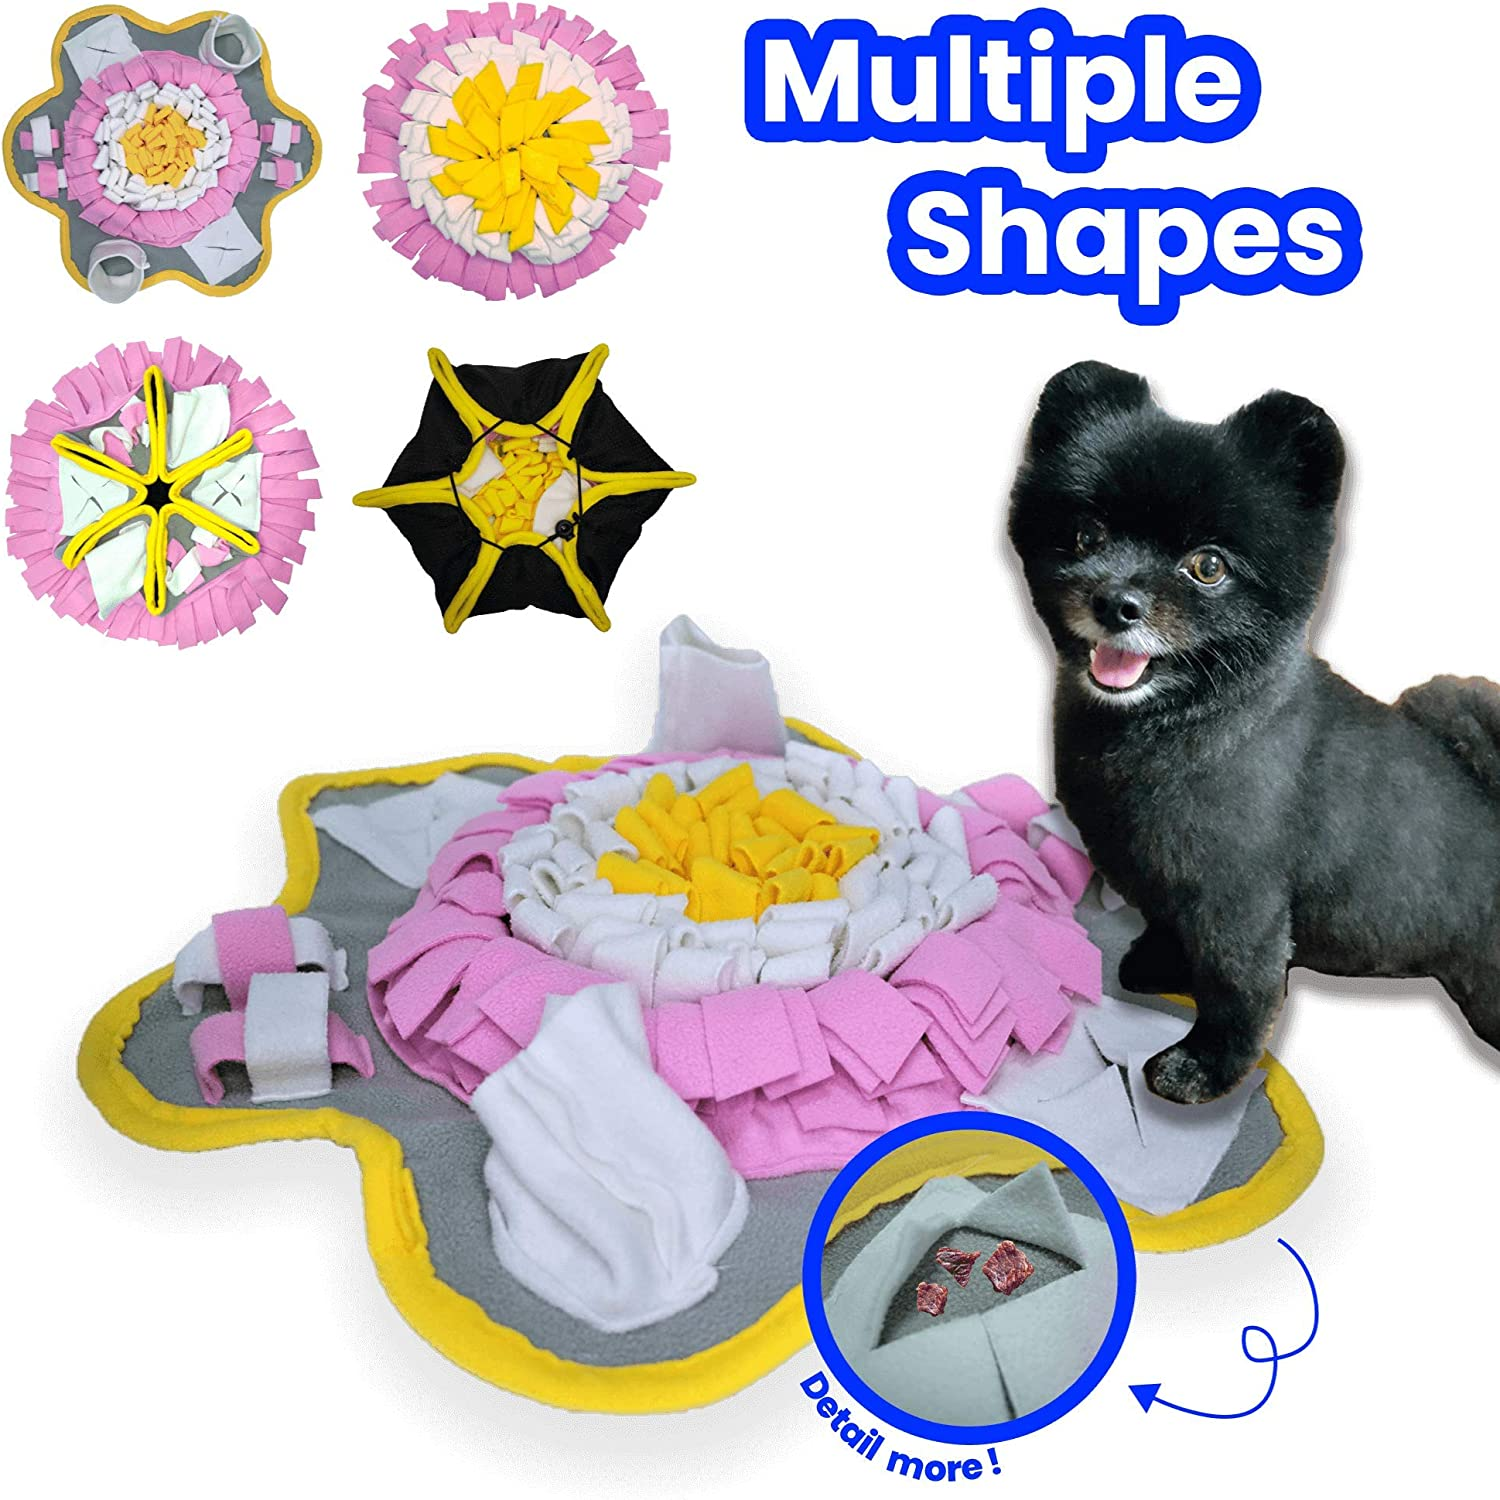 PYOGO Snuffle Mat for Dog - Indoor Activity for Boredom - Slow Feeding Food Bowl - Encourage Foraging Skill - Interactive Training Puzzle Toy - Washable Durable